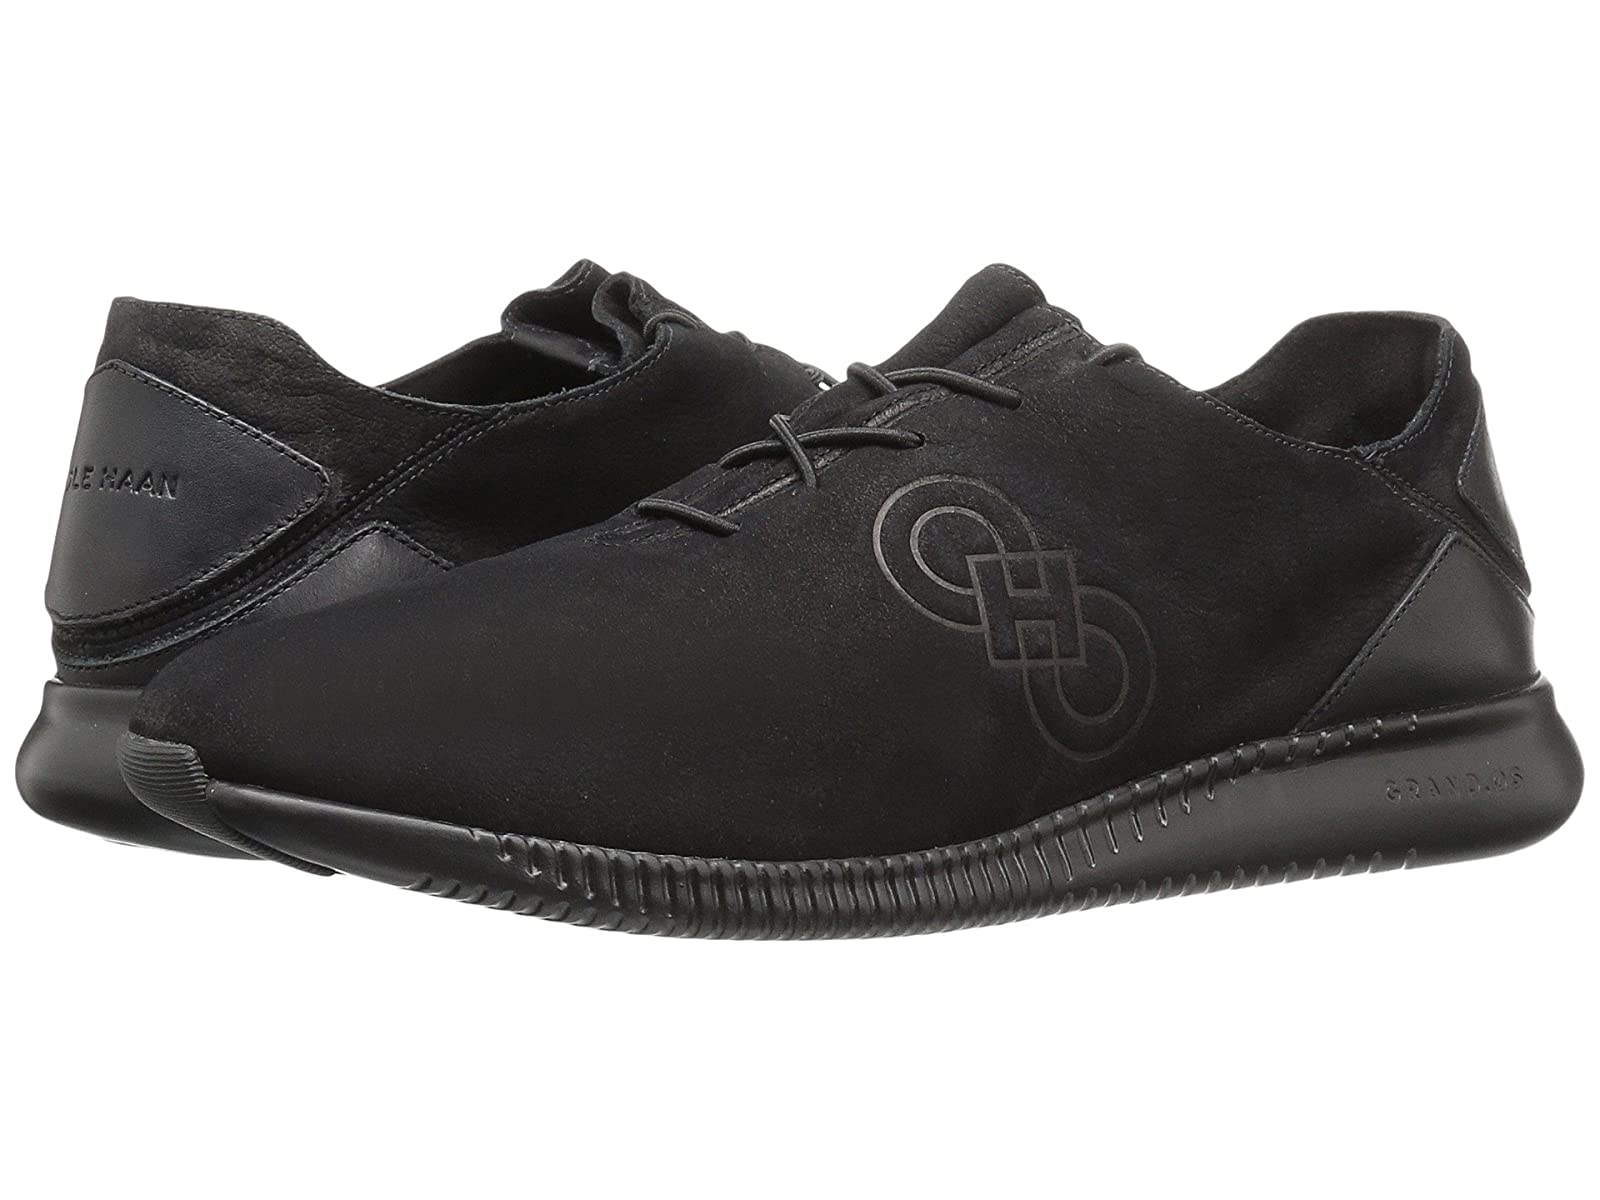 Cole Haan 2.0 Studiogrand TrainerCheap and distinctive eye-catching shoes